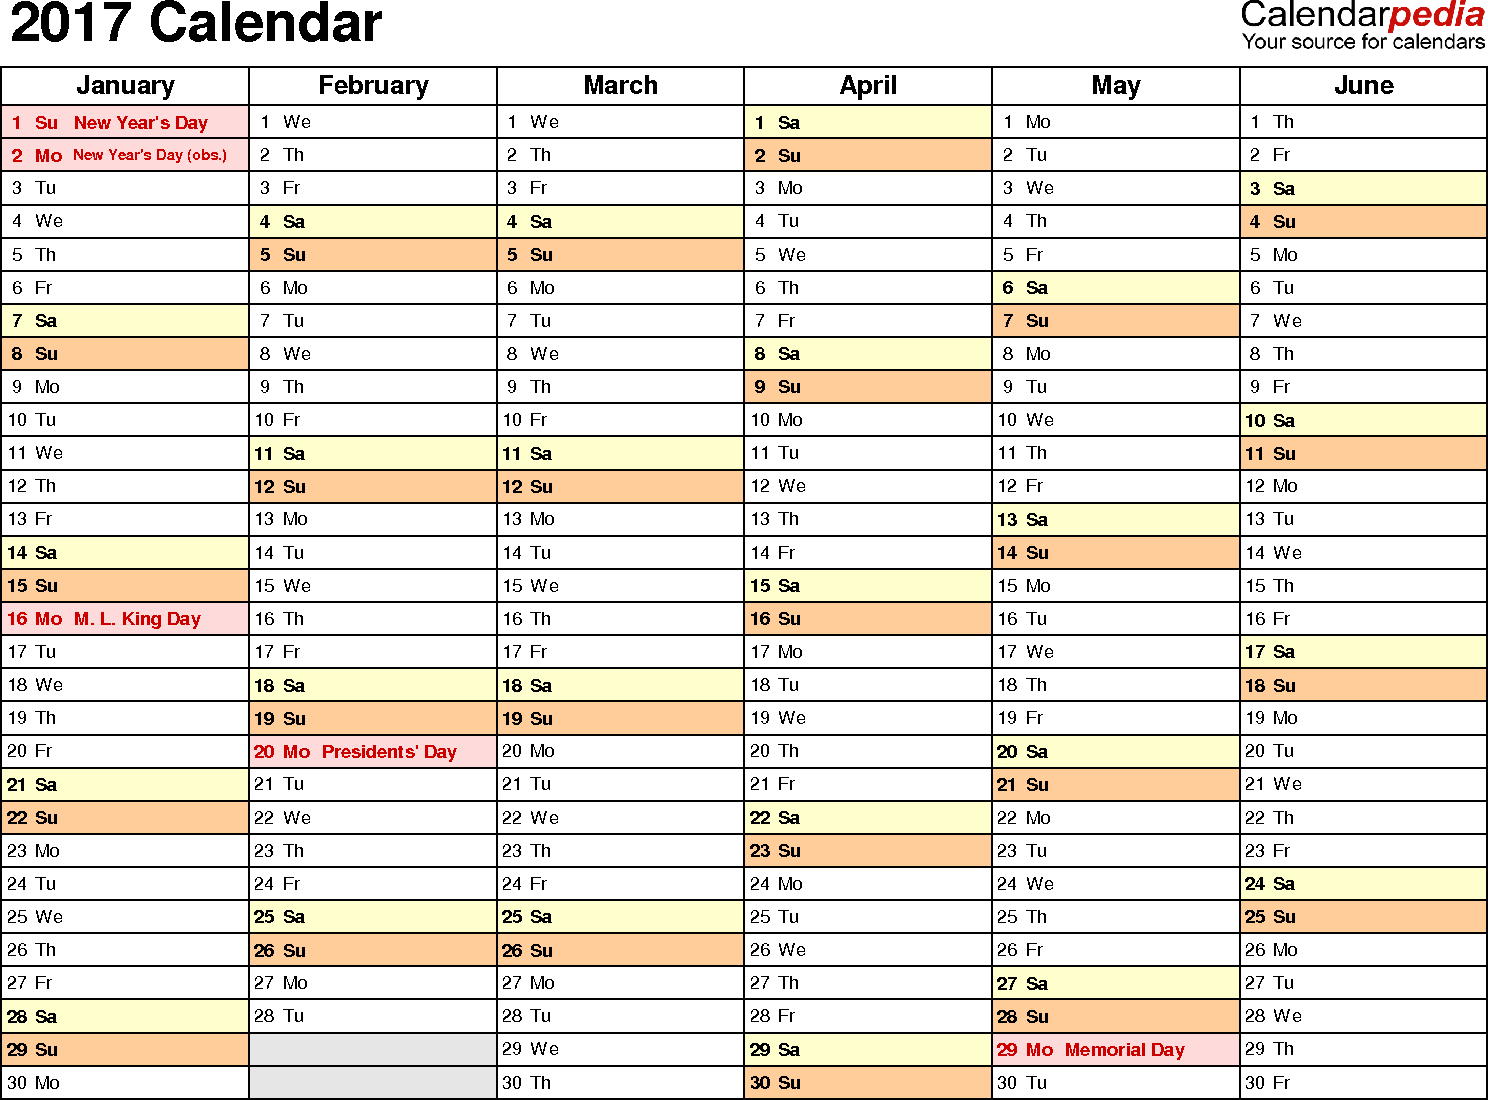 Ediblewildsus  Scenic  Calendar  Download  Free Printable Excel Templates Xls With Foxy Template   Calendar For Excel Months Horizontally  Pages Landscape Orientation With Adorable Counta Excel Also Excel Offset Function In Addition Insert Check Mark In Excel And Excel Concatenate Strings As Well As Excel Vba Tutorial Additionally Sparklines Excel From Calendarpediacom With Ediblewildsus  Foxy  Calendar  Download  Free Printable Excel Templates Xls With Adorable Template   Calendar For Excel Months Horizontally  Pages Landscape Orientation And Scenic Counta Excel Also Excel Offset Function In Addition Insert Check Mark In Excel From Calendarpediacom